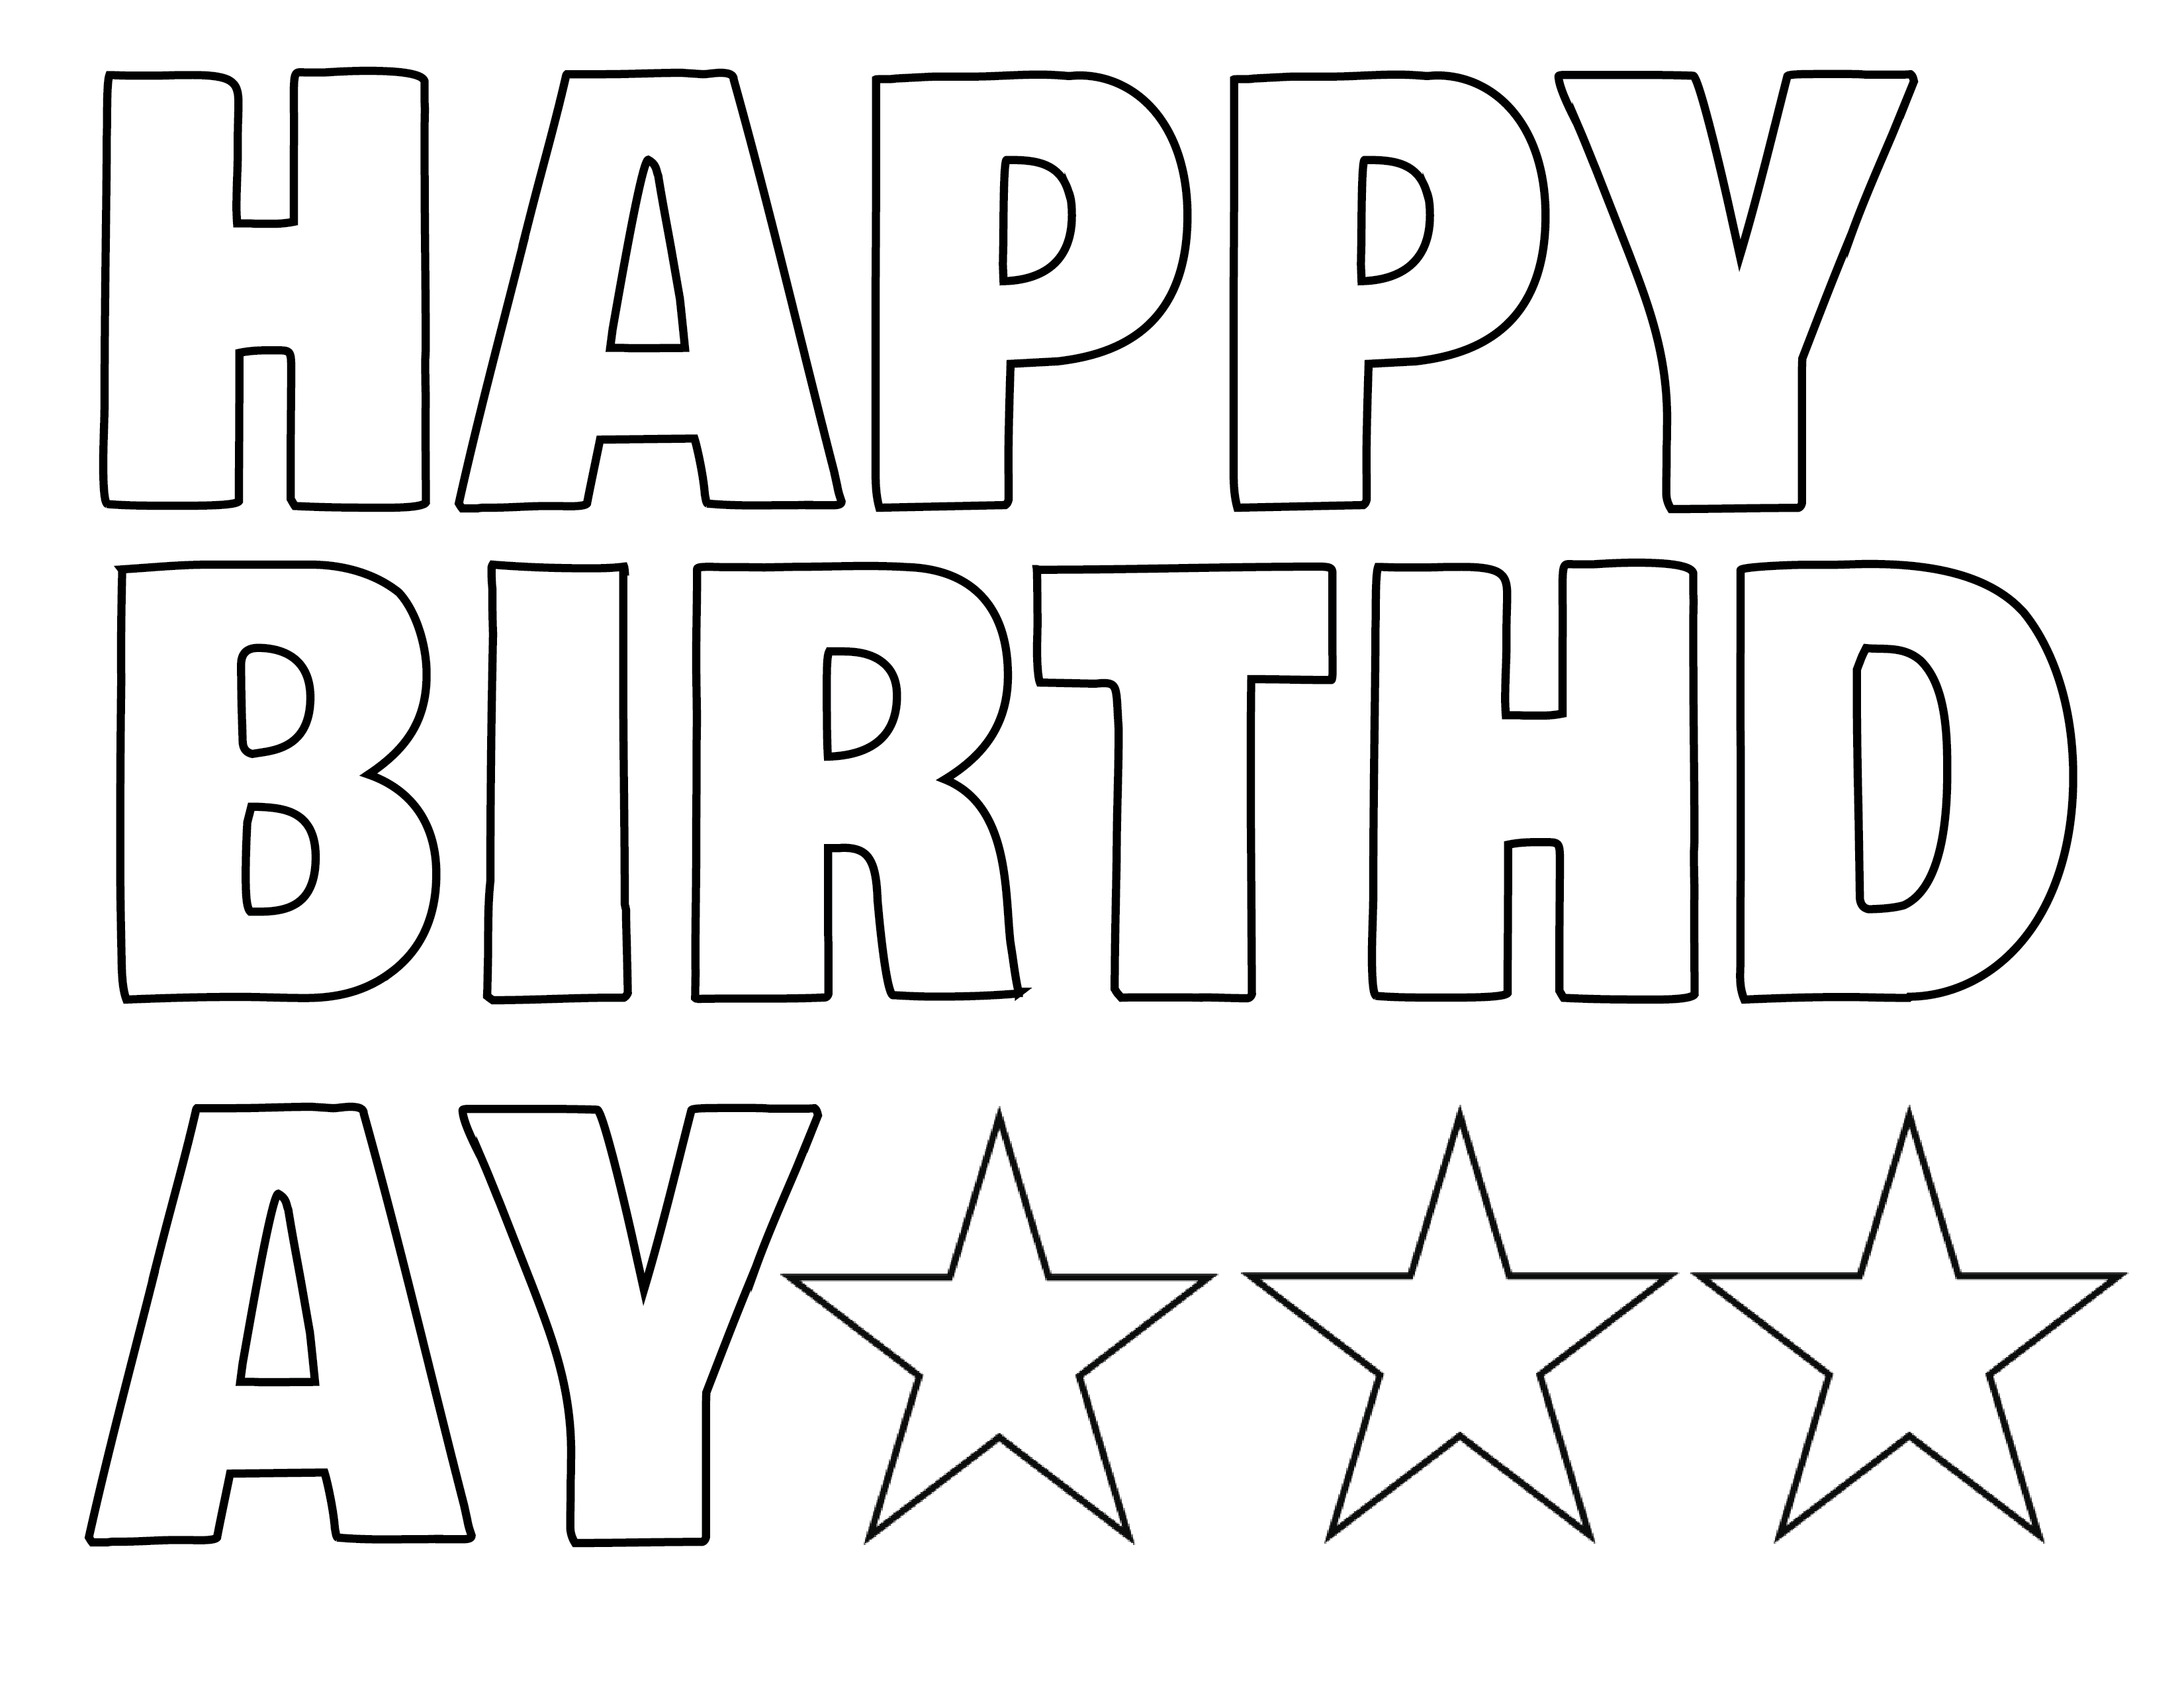 Happy Birthday Print Out Letters Sketch Coloring Page